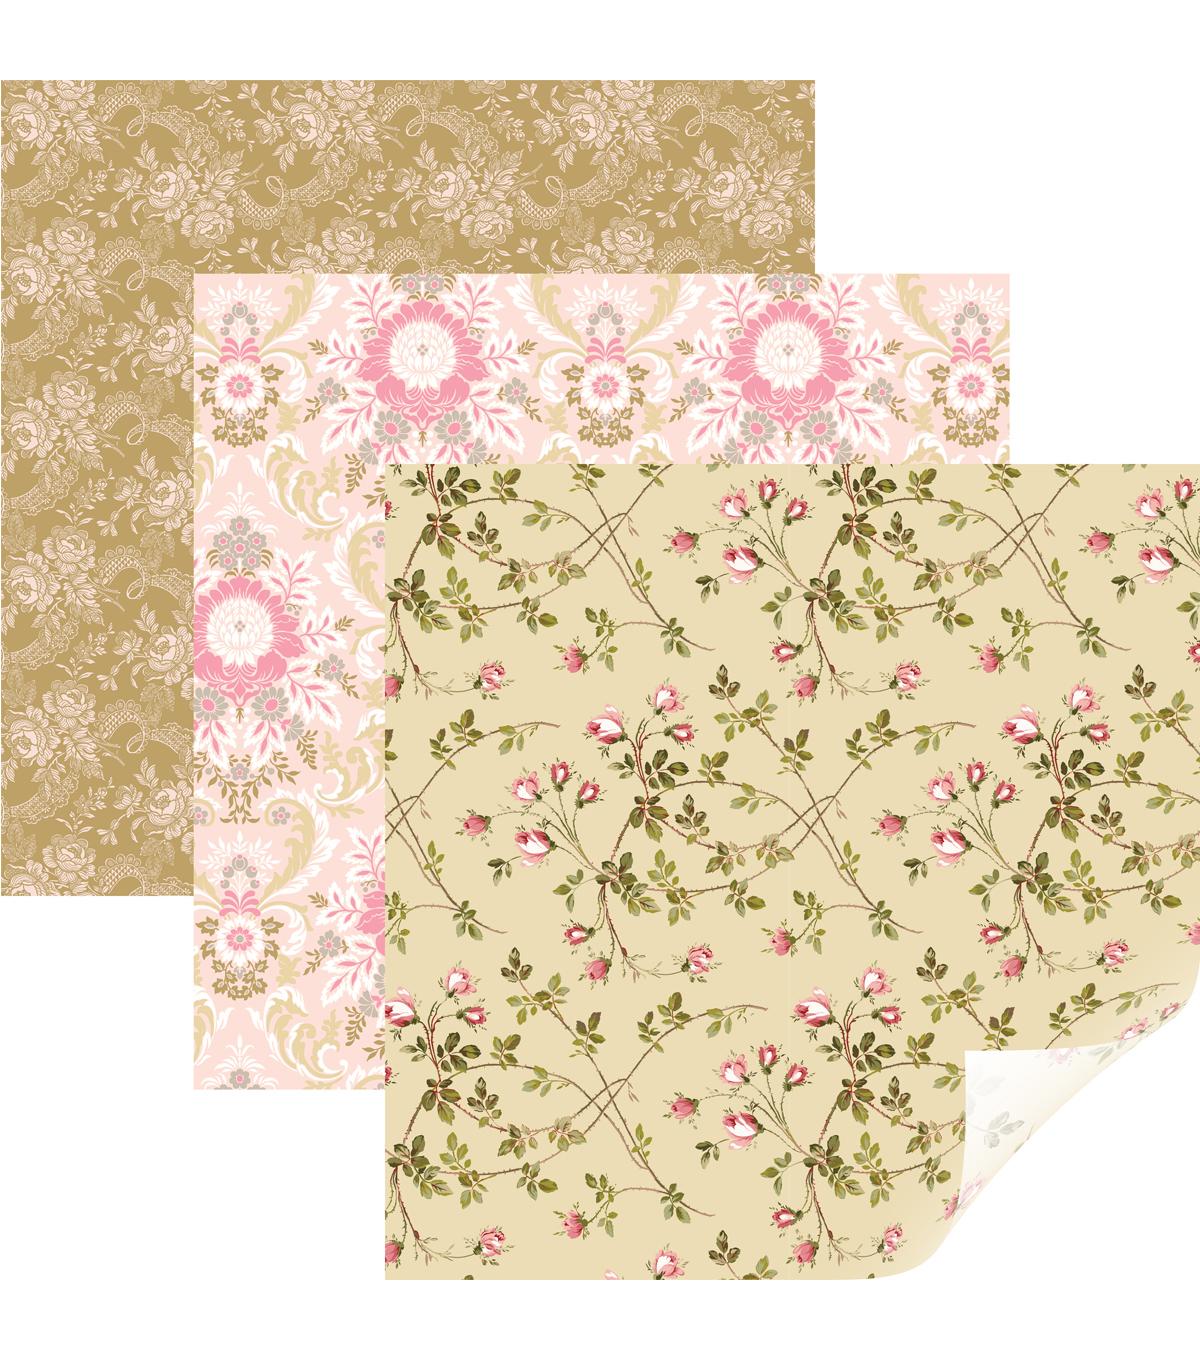 Cricut Anna Griffin 6 pk Removable Matte Patterned Vinyl Samplers-Juliet